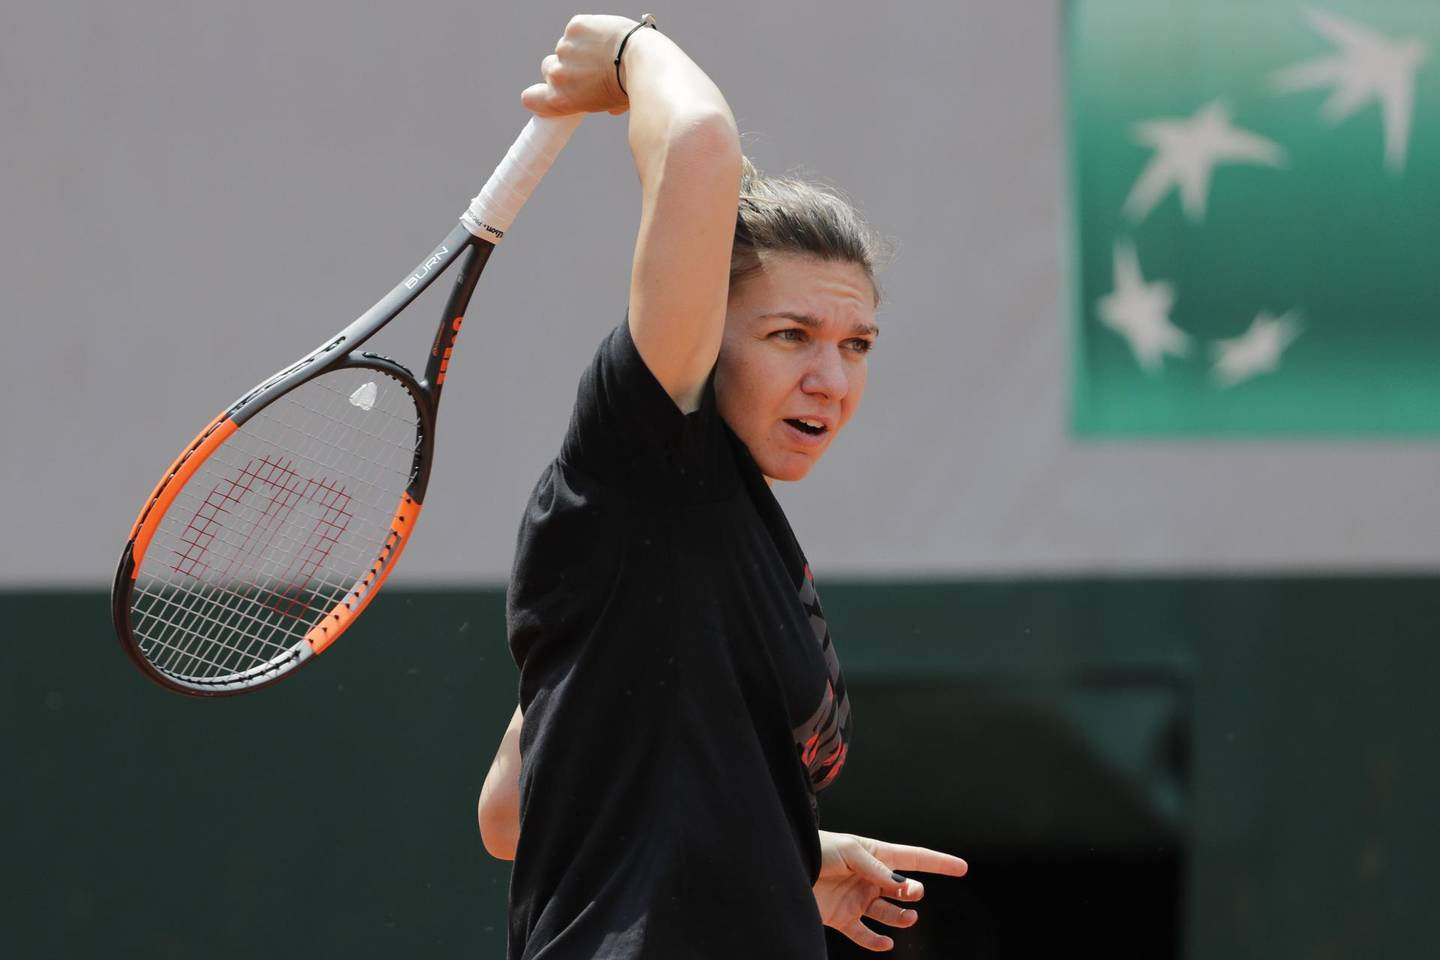 Romania's Simona Halep returns the ball during a training session in Paris on May 24, 2018, ahead of The Roland Garros 2018 French Open tennis tournament. / AFP / Thomas SAMSON